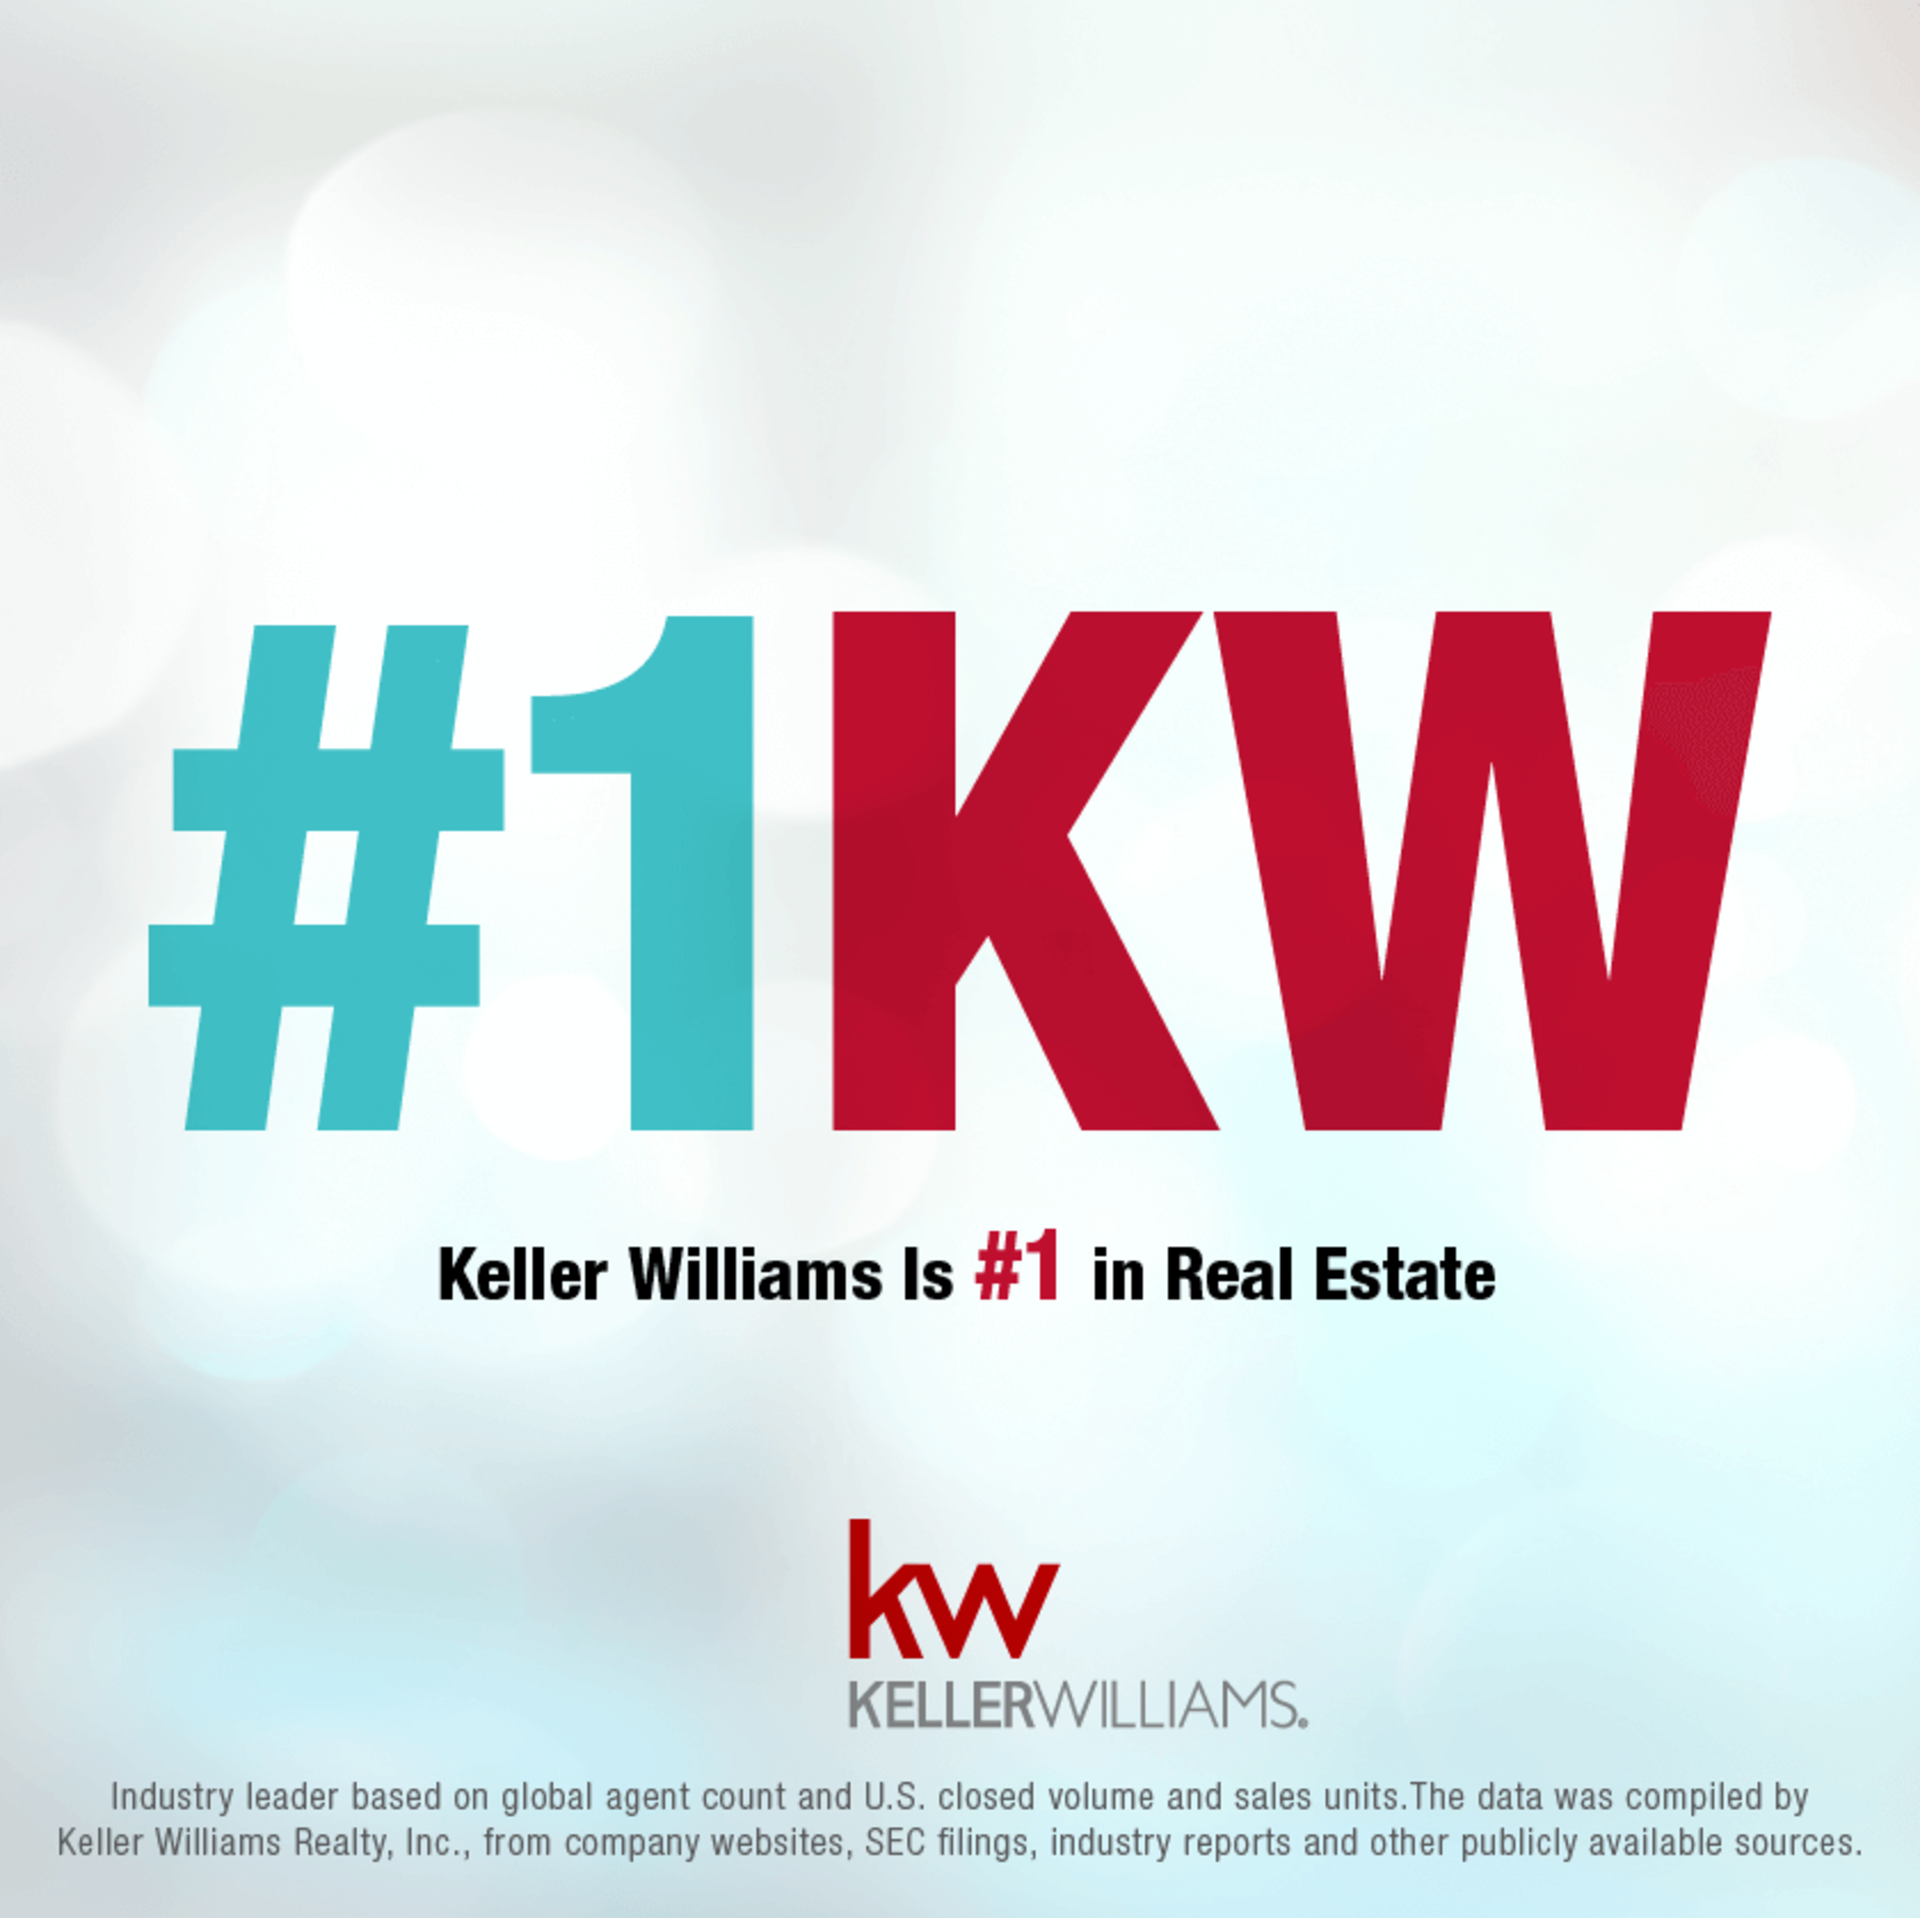 Keller Williams is the #1 Brokerage!